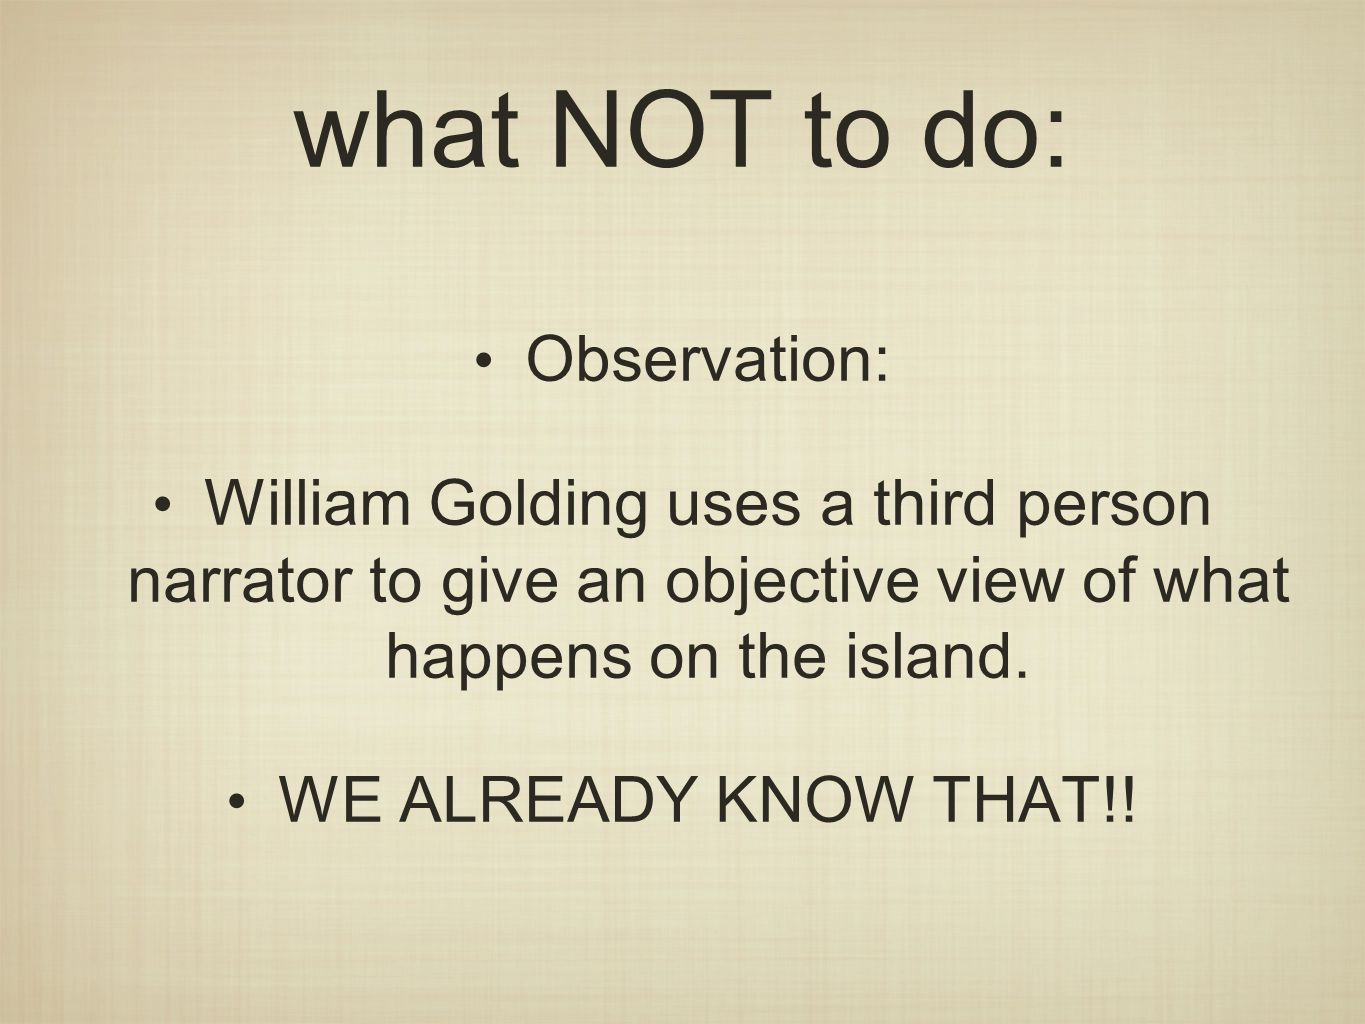 what NOT to do: Observation: William Golding uses a third person narrator to give an objective view of what happens on the island.